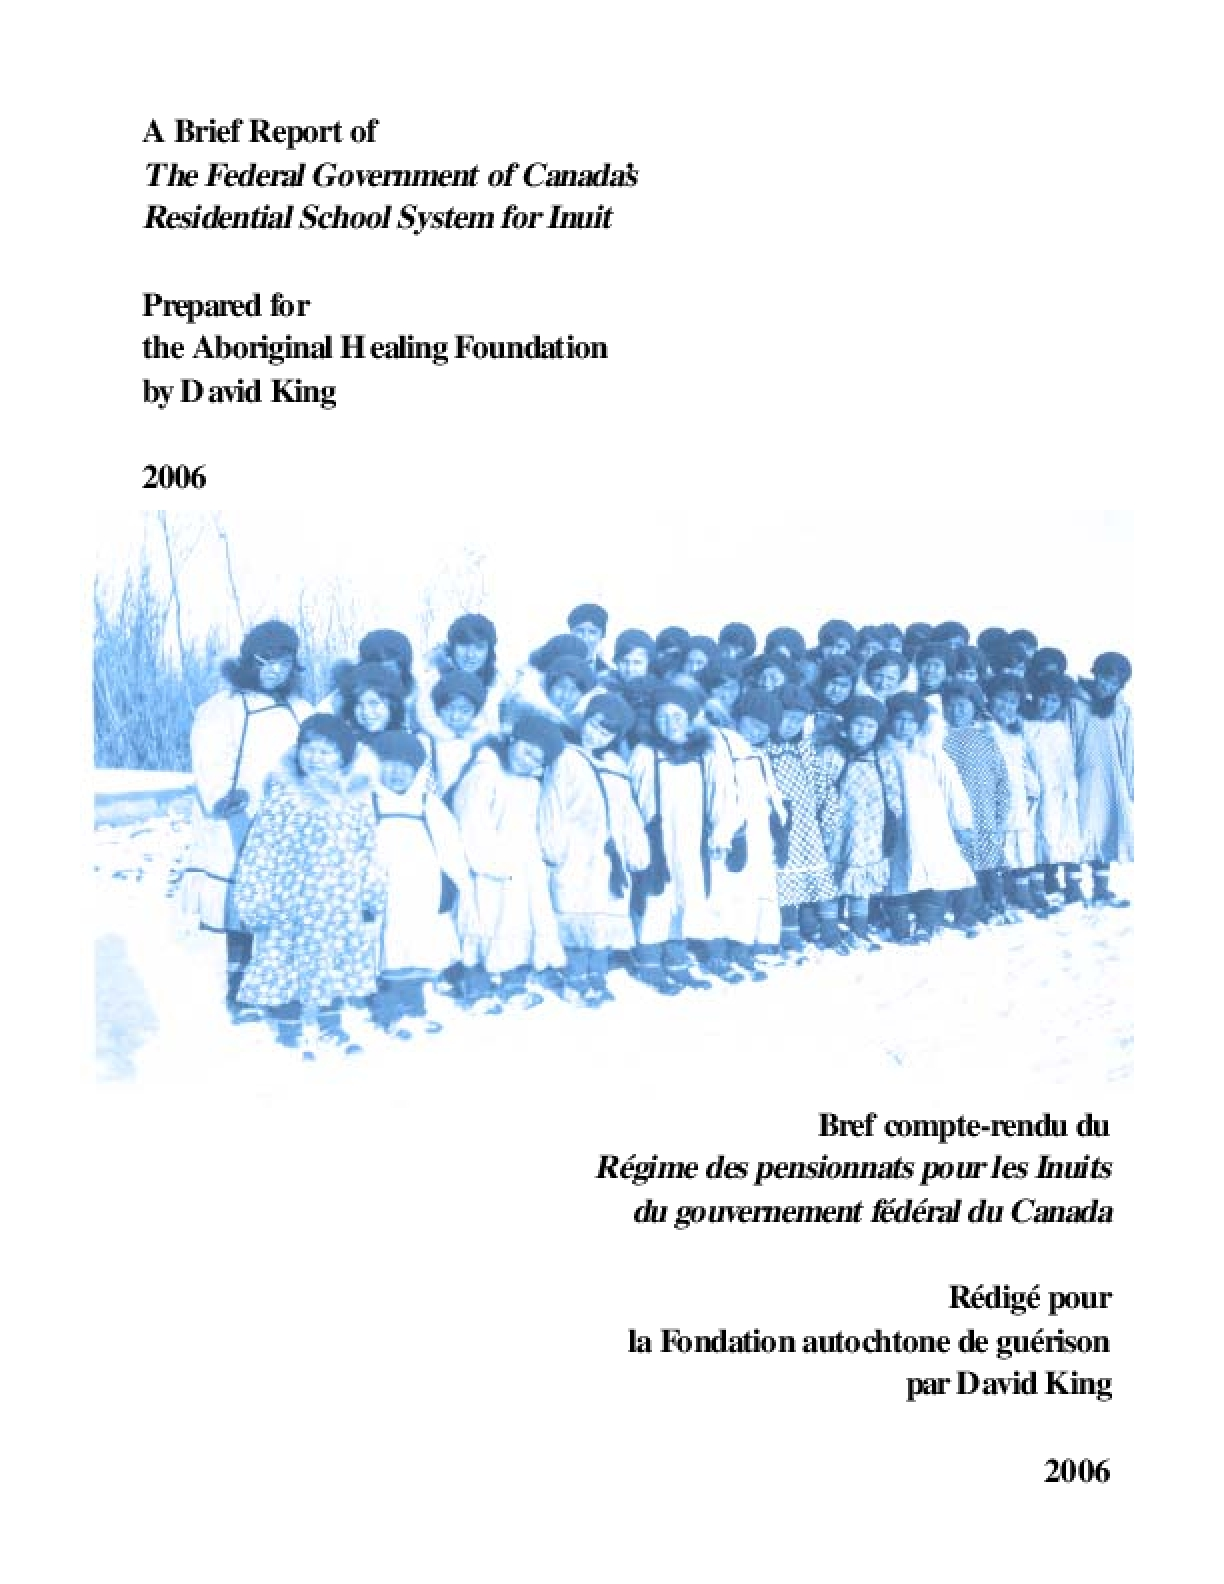 A Brief Report of the Federal Government of Canada's Residential School System for Inuit